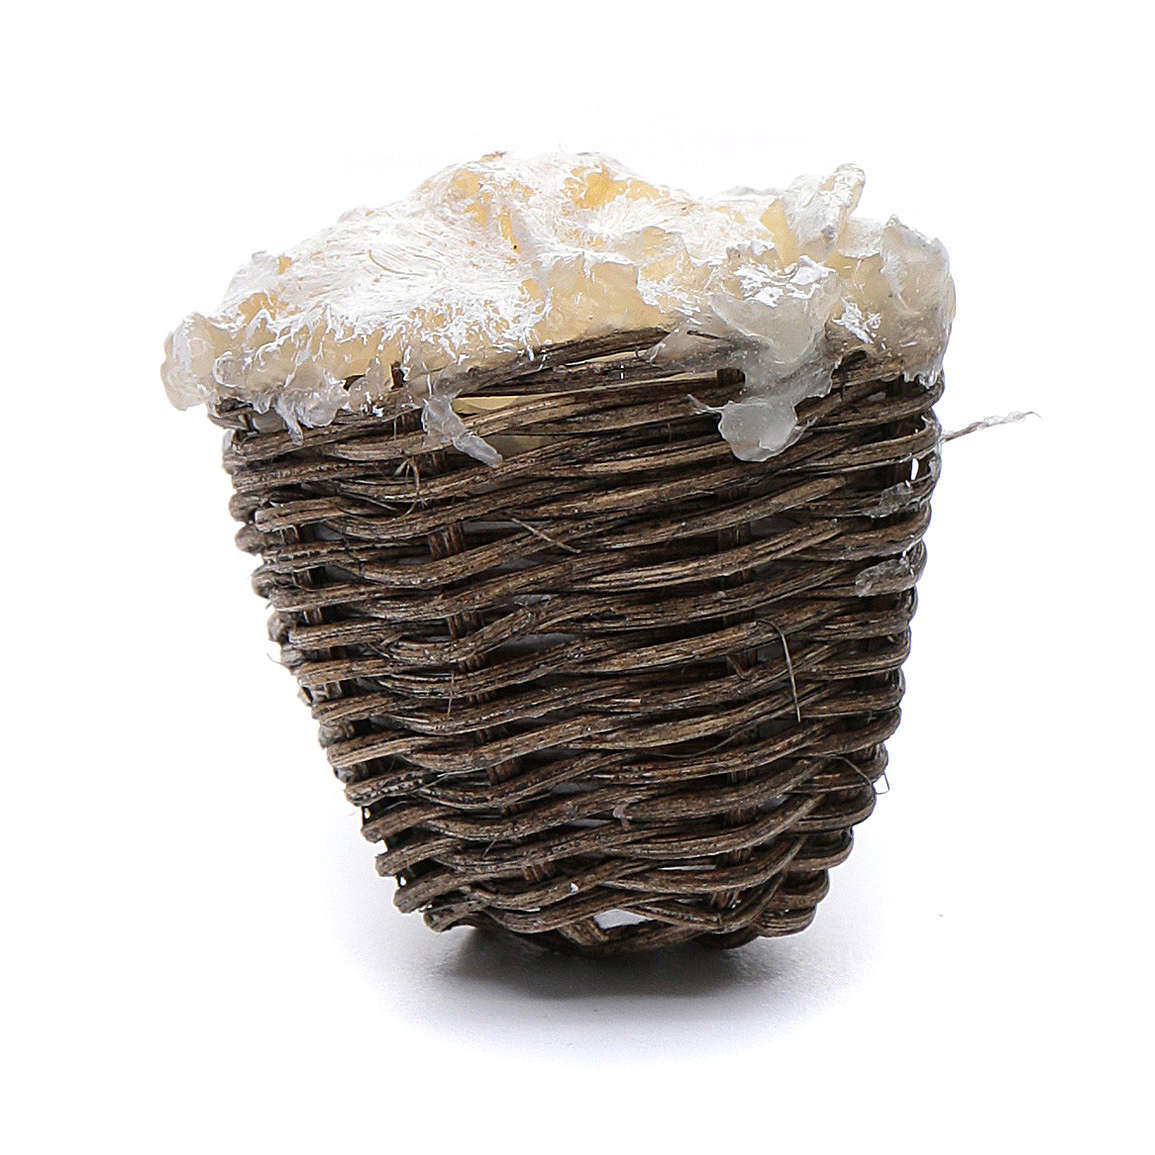 Straw basket with ricotta cheese 4